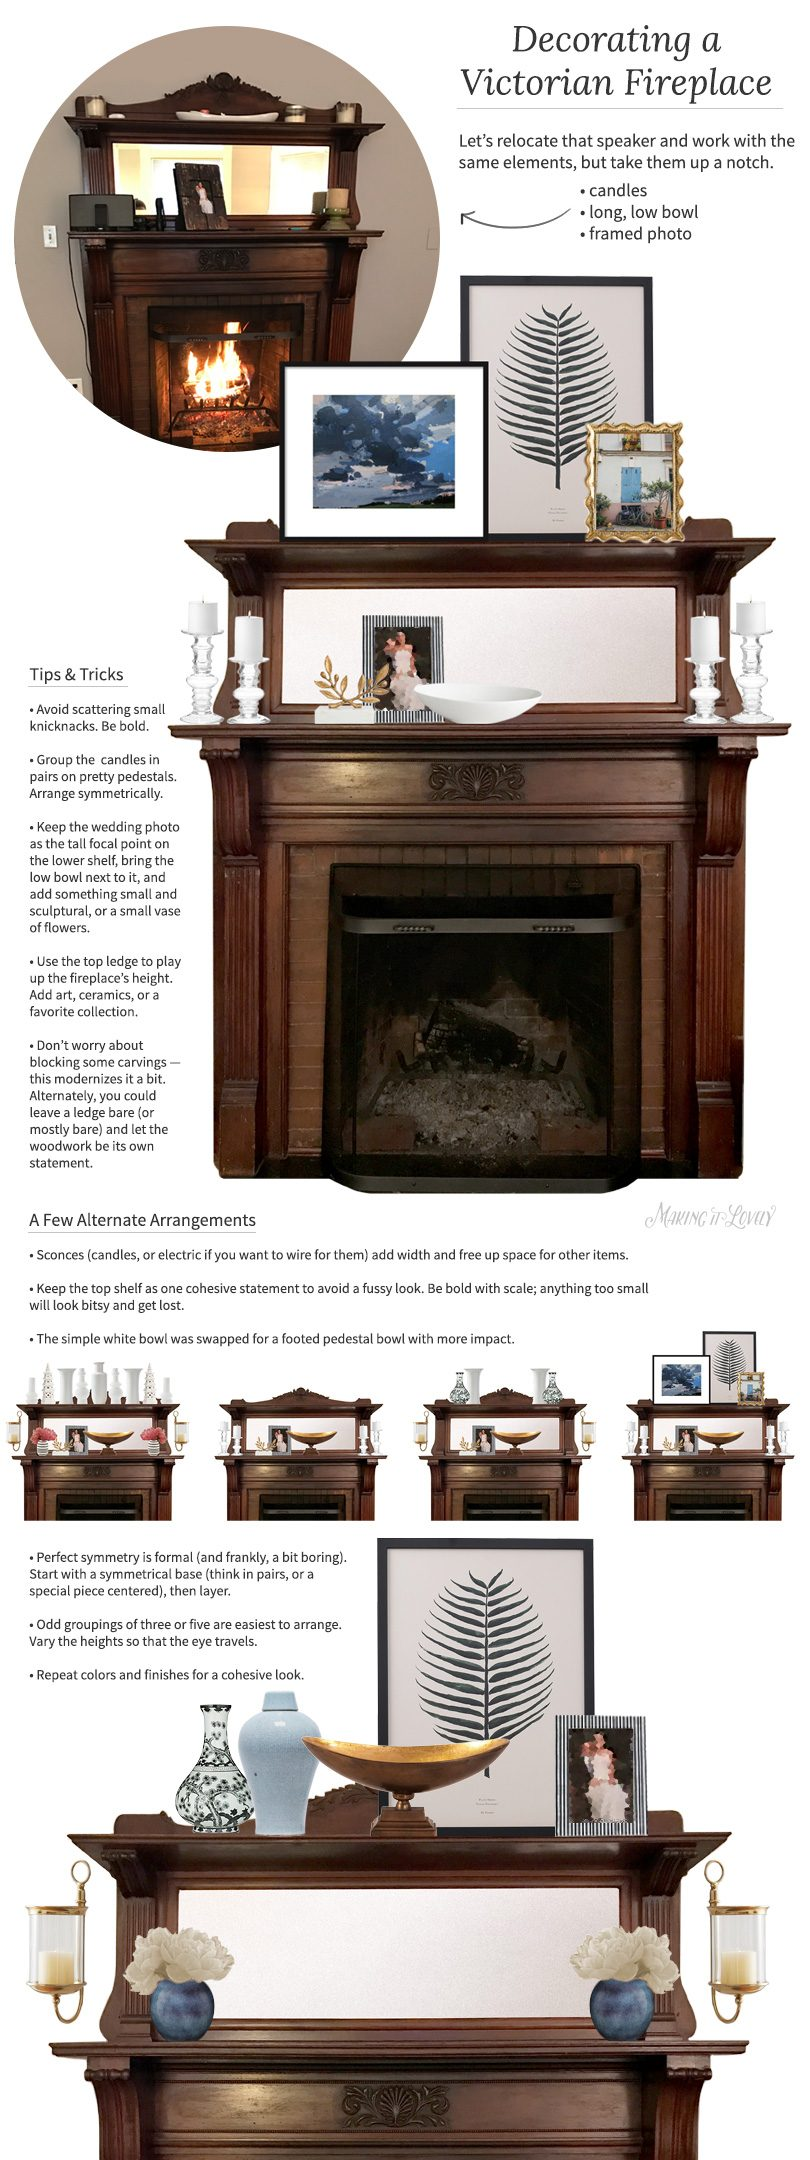 Ideas for Decorating a Modern Victorian Fireplace Mantel | Making it Lovely